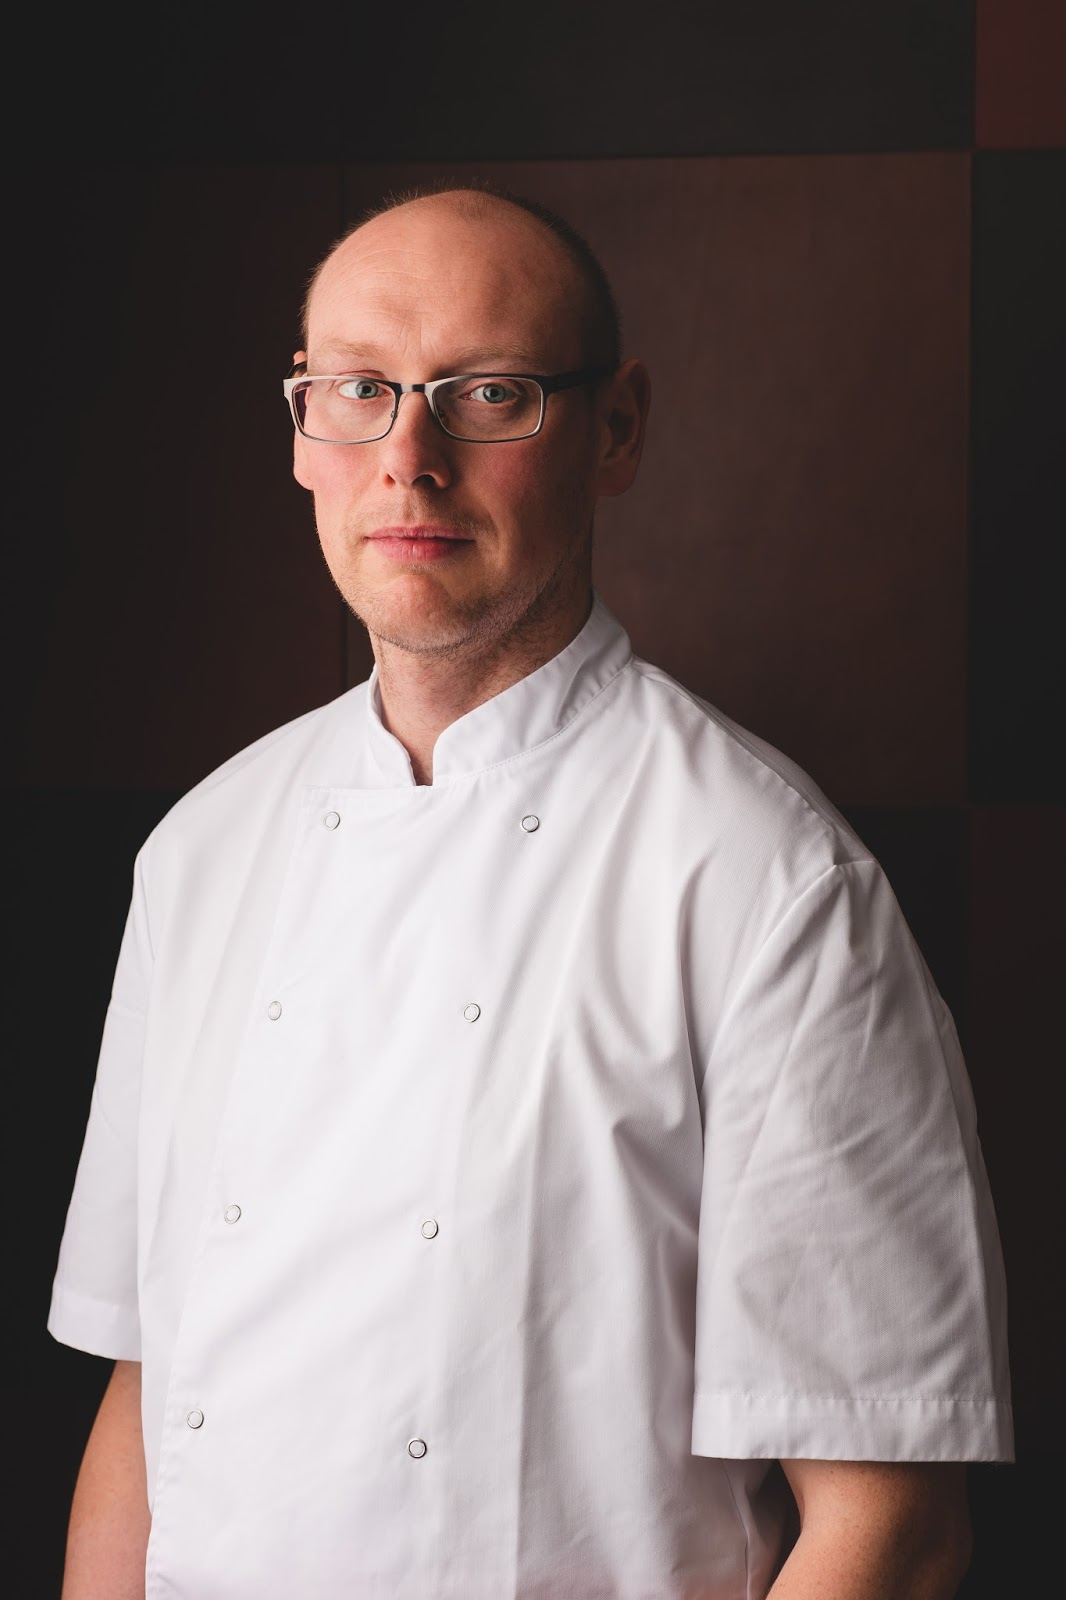 STEVE SMITH , HEAD CHEF AT BOHEMIA